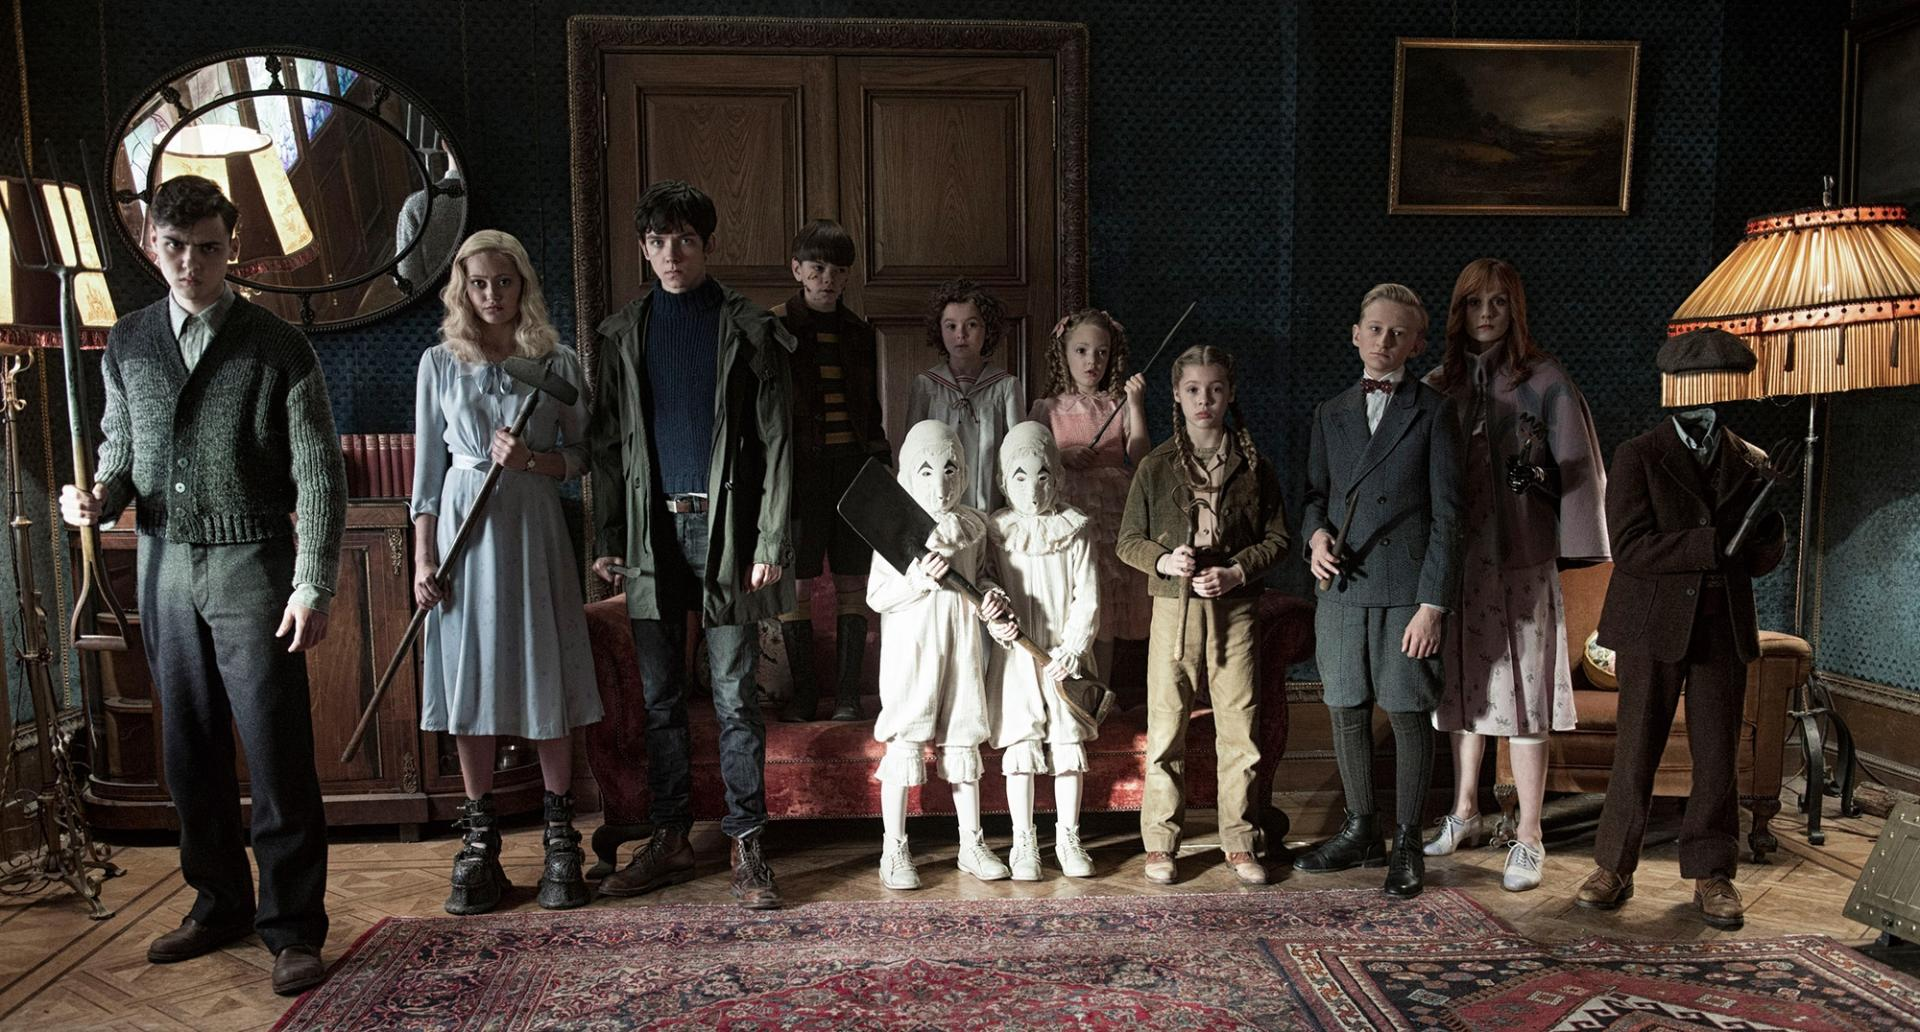 The Peculiar Children - (l to r) Enoch O'Connor (Finlay MacMillan), Emma Bloom (Ella Purnell), Jake Portman (Asa Butterfield), Hugh Apiston (Milo Parker), The Twins (Joseph Odwell and Thomas Odwell), Bronwyn Bruntley (Pixie Davies), Claire Densmore (Raffiella Chapman), Fiona Frauenfeld (Georgia Pemberton), Horace Somnusson (Hayden Keeler-Stone), Olive Abroholos Elephanta (Lauren McCrostie) and Millard Nullings (Cameron King) in Miss Peregrine's Home for Peculiar Children (2016)